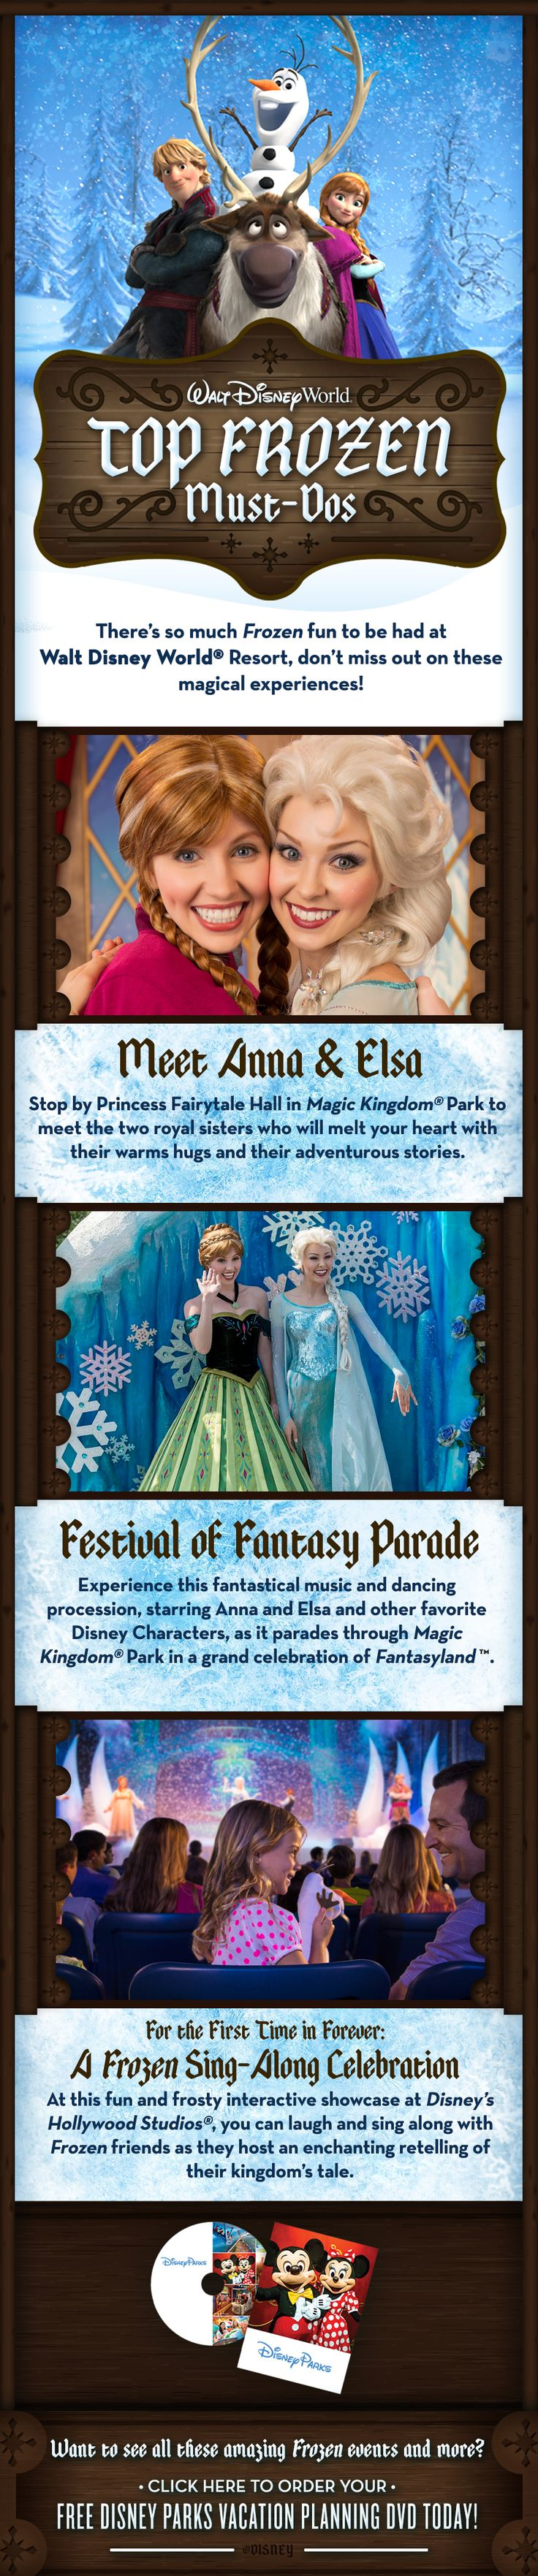 Top Frozen Must-Dos at Walt Disney World featuring Anna, Elsa and Olaf! Wanting to plan a 'Frozen' Disney vacation?? I can help for FREE! Contact me today! Jorie@onceuponavacation.com